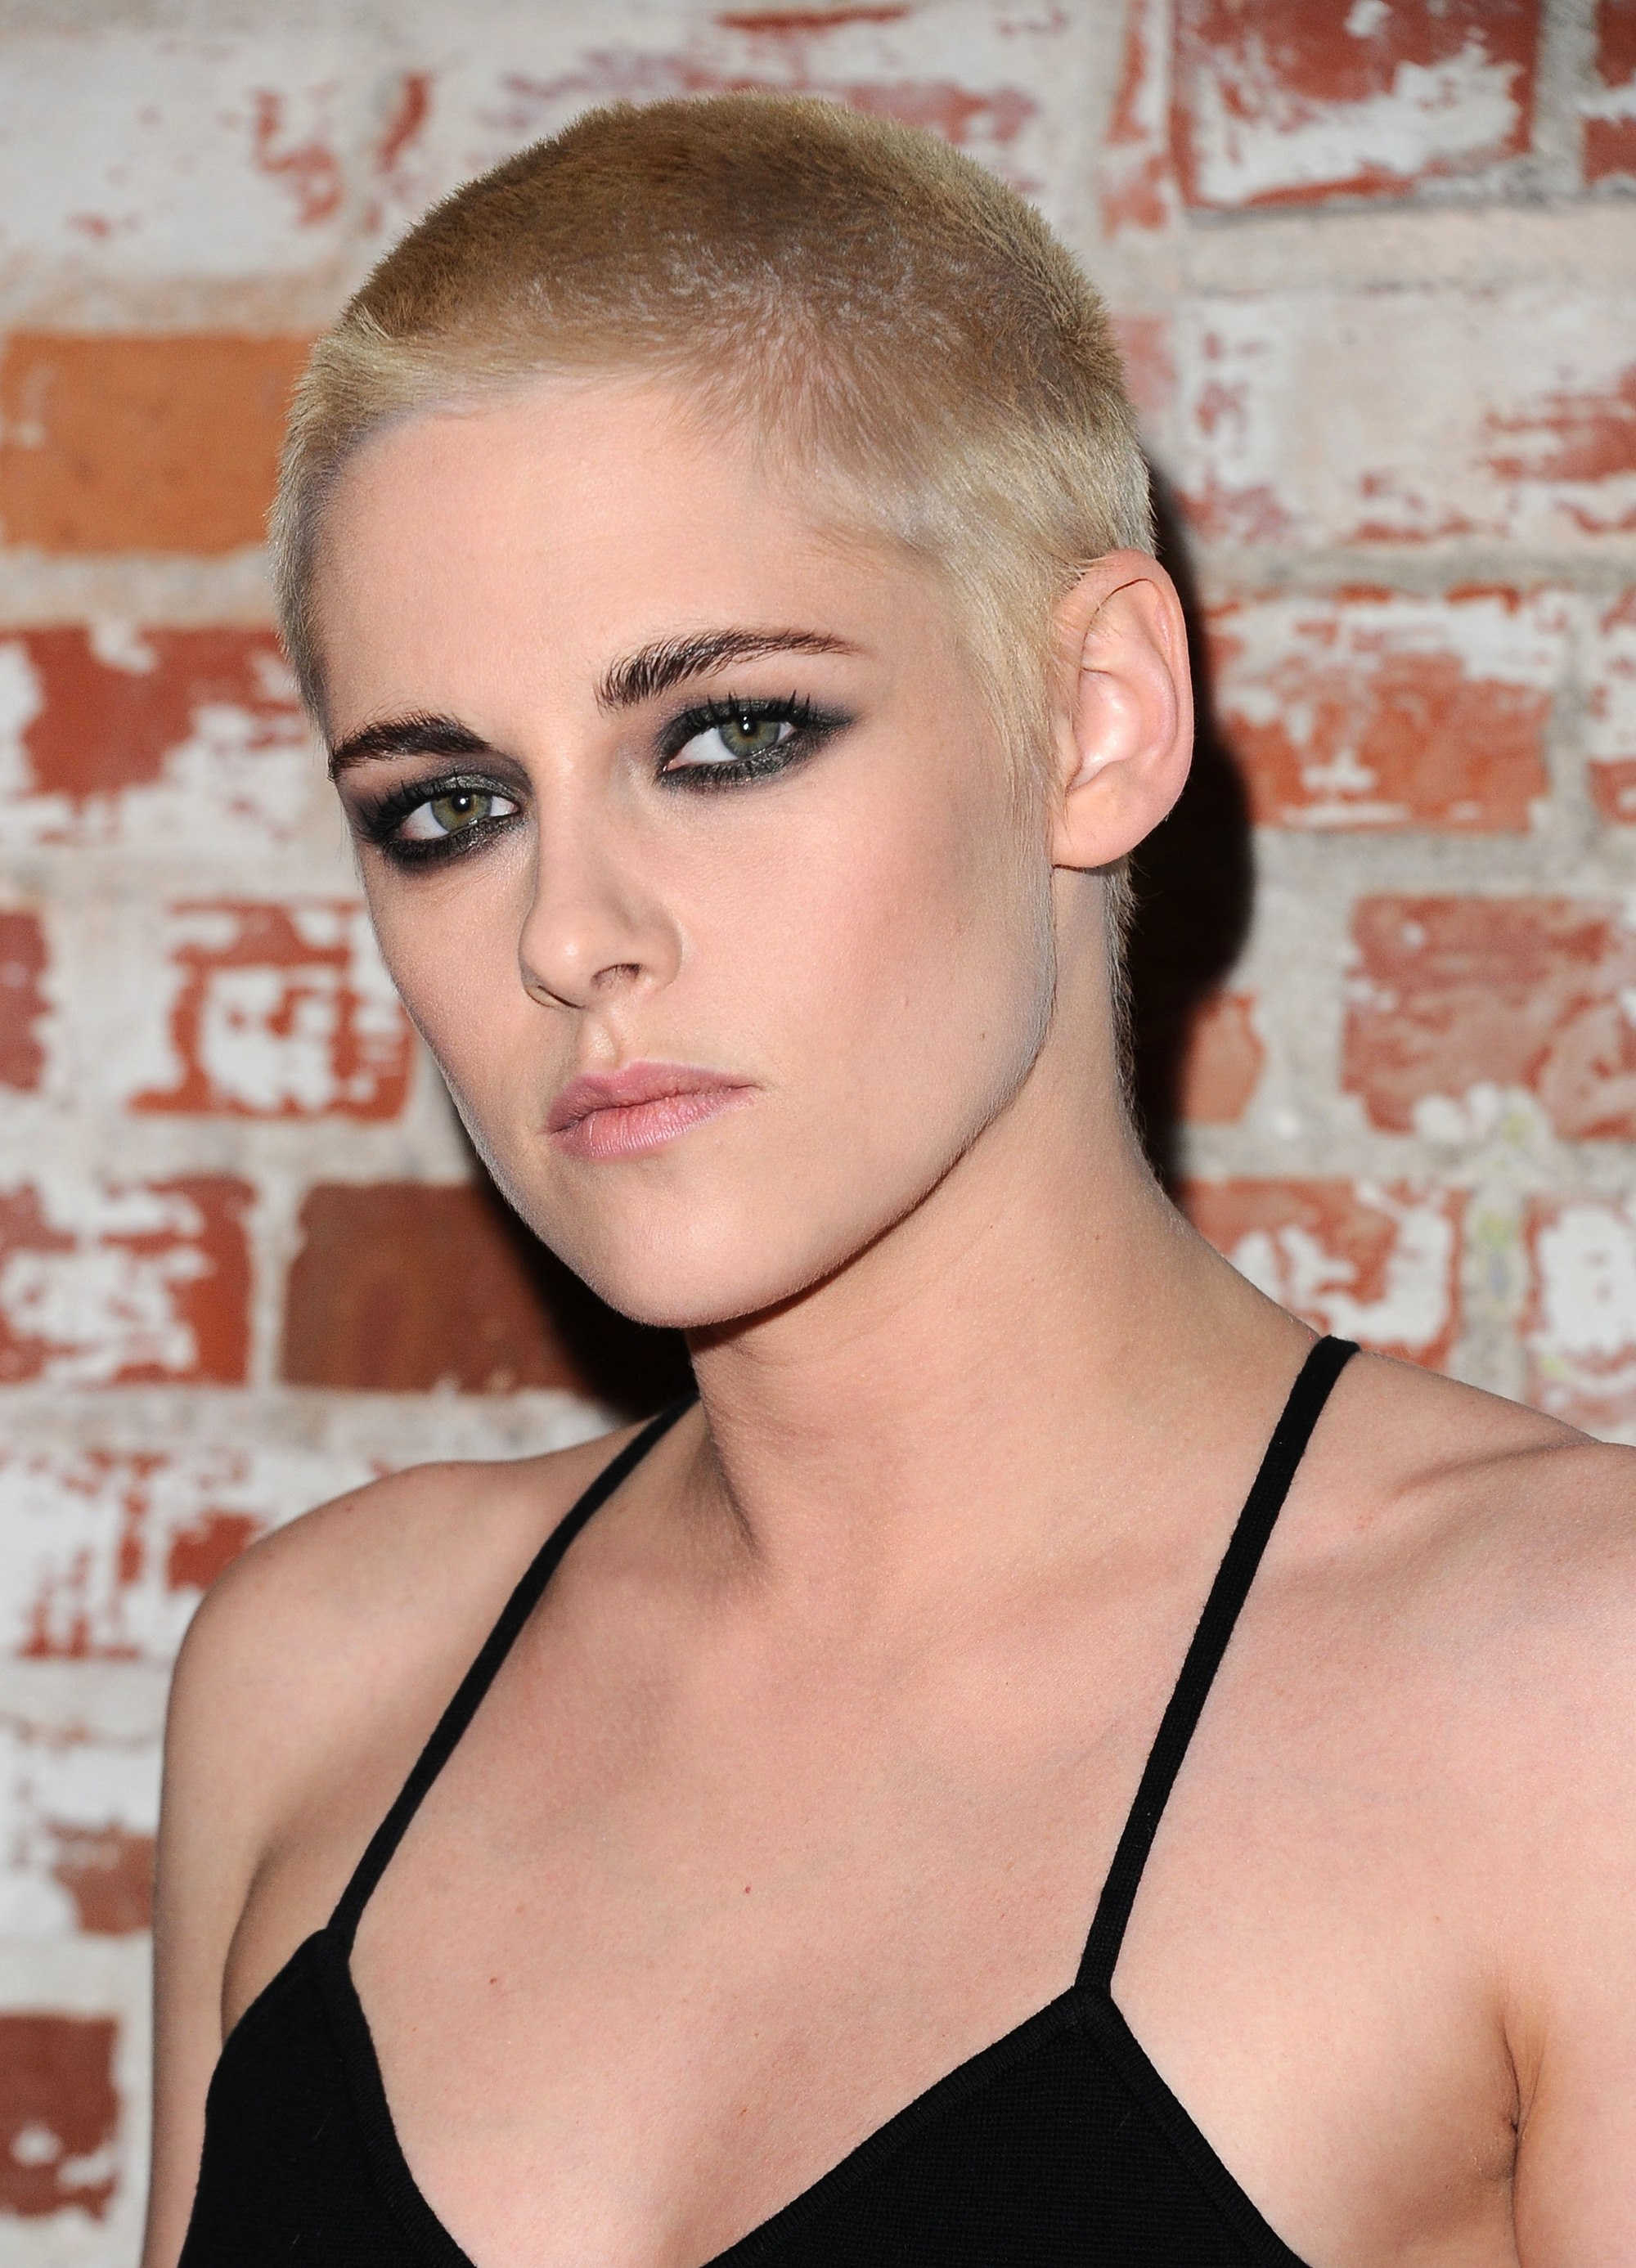 Removed Kristen stewart as a blonde